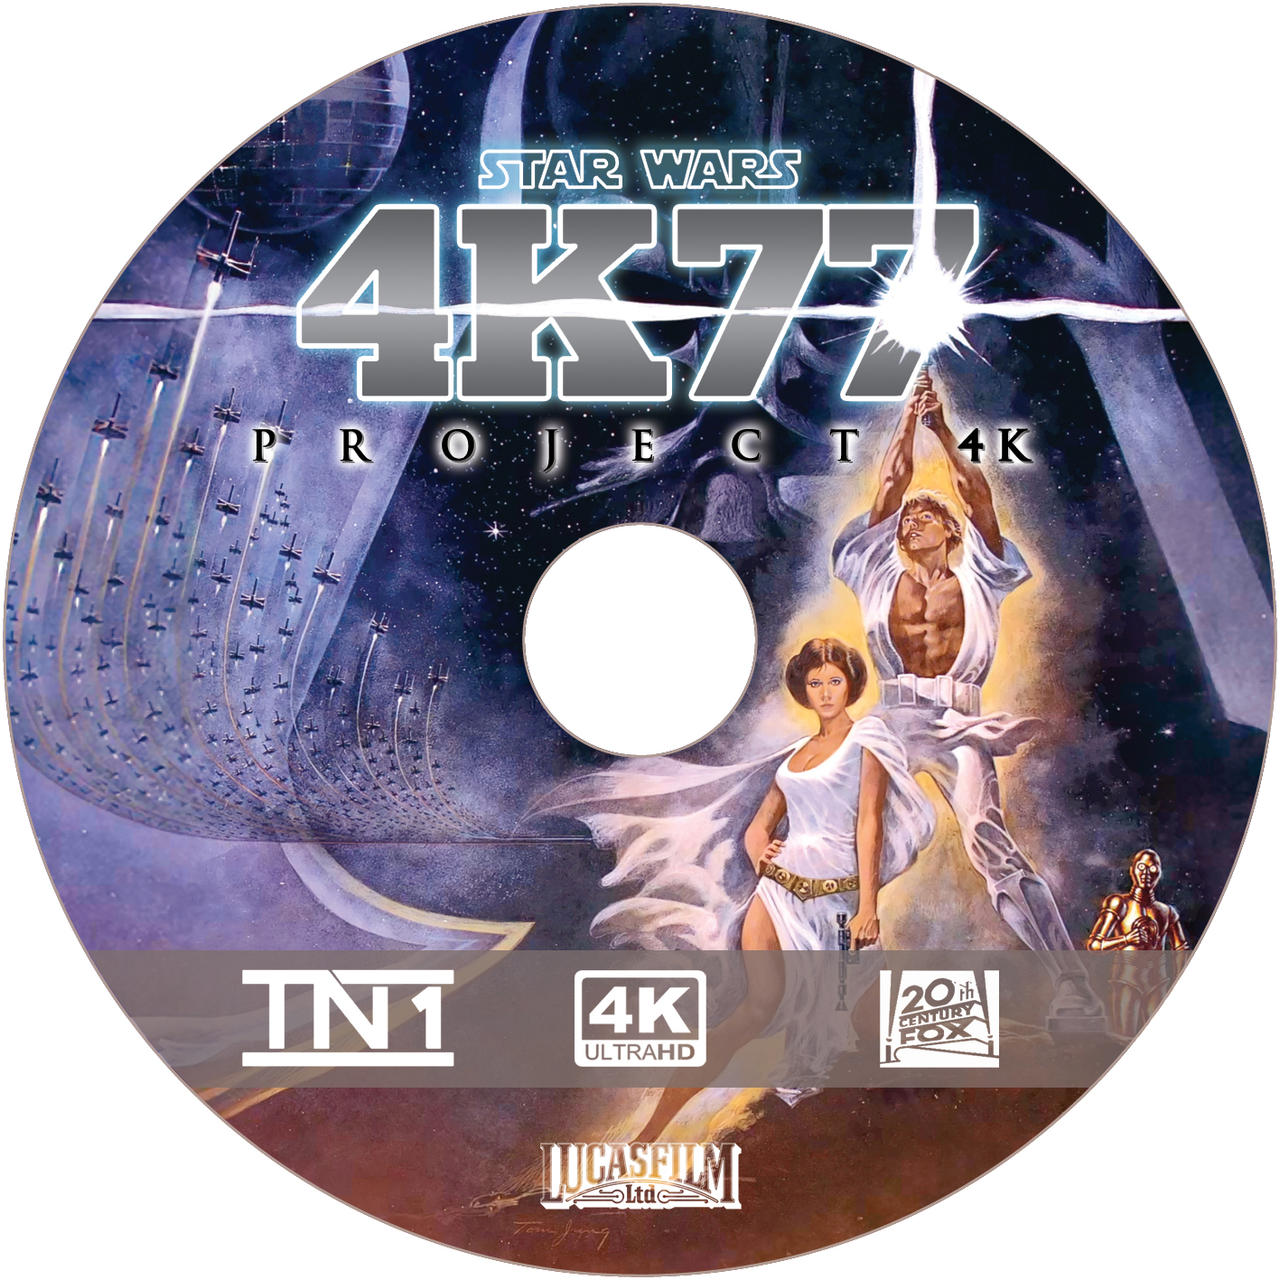 Project 4K77 disc